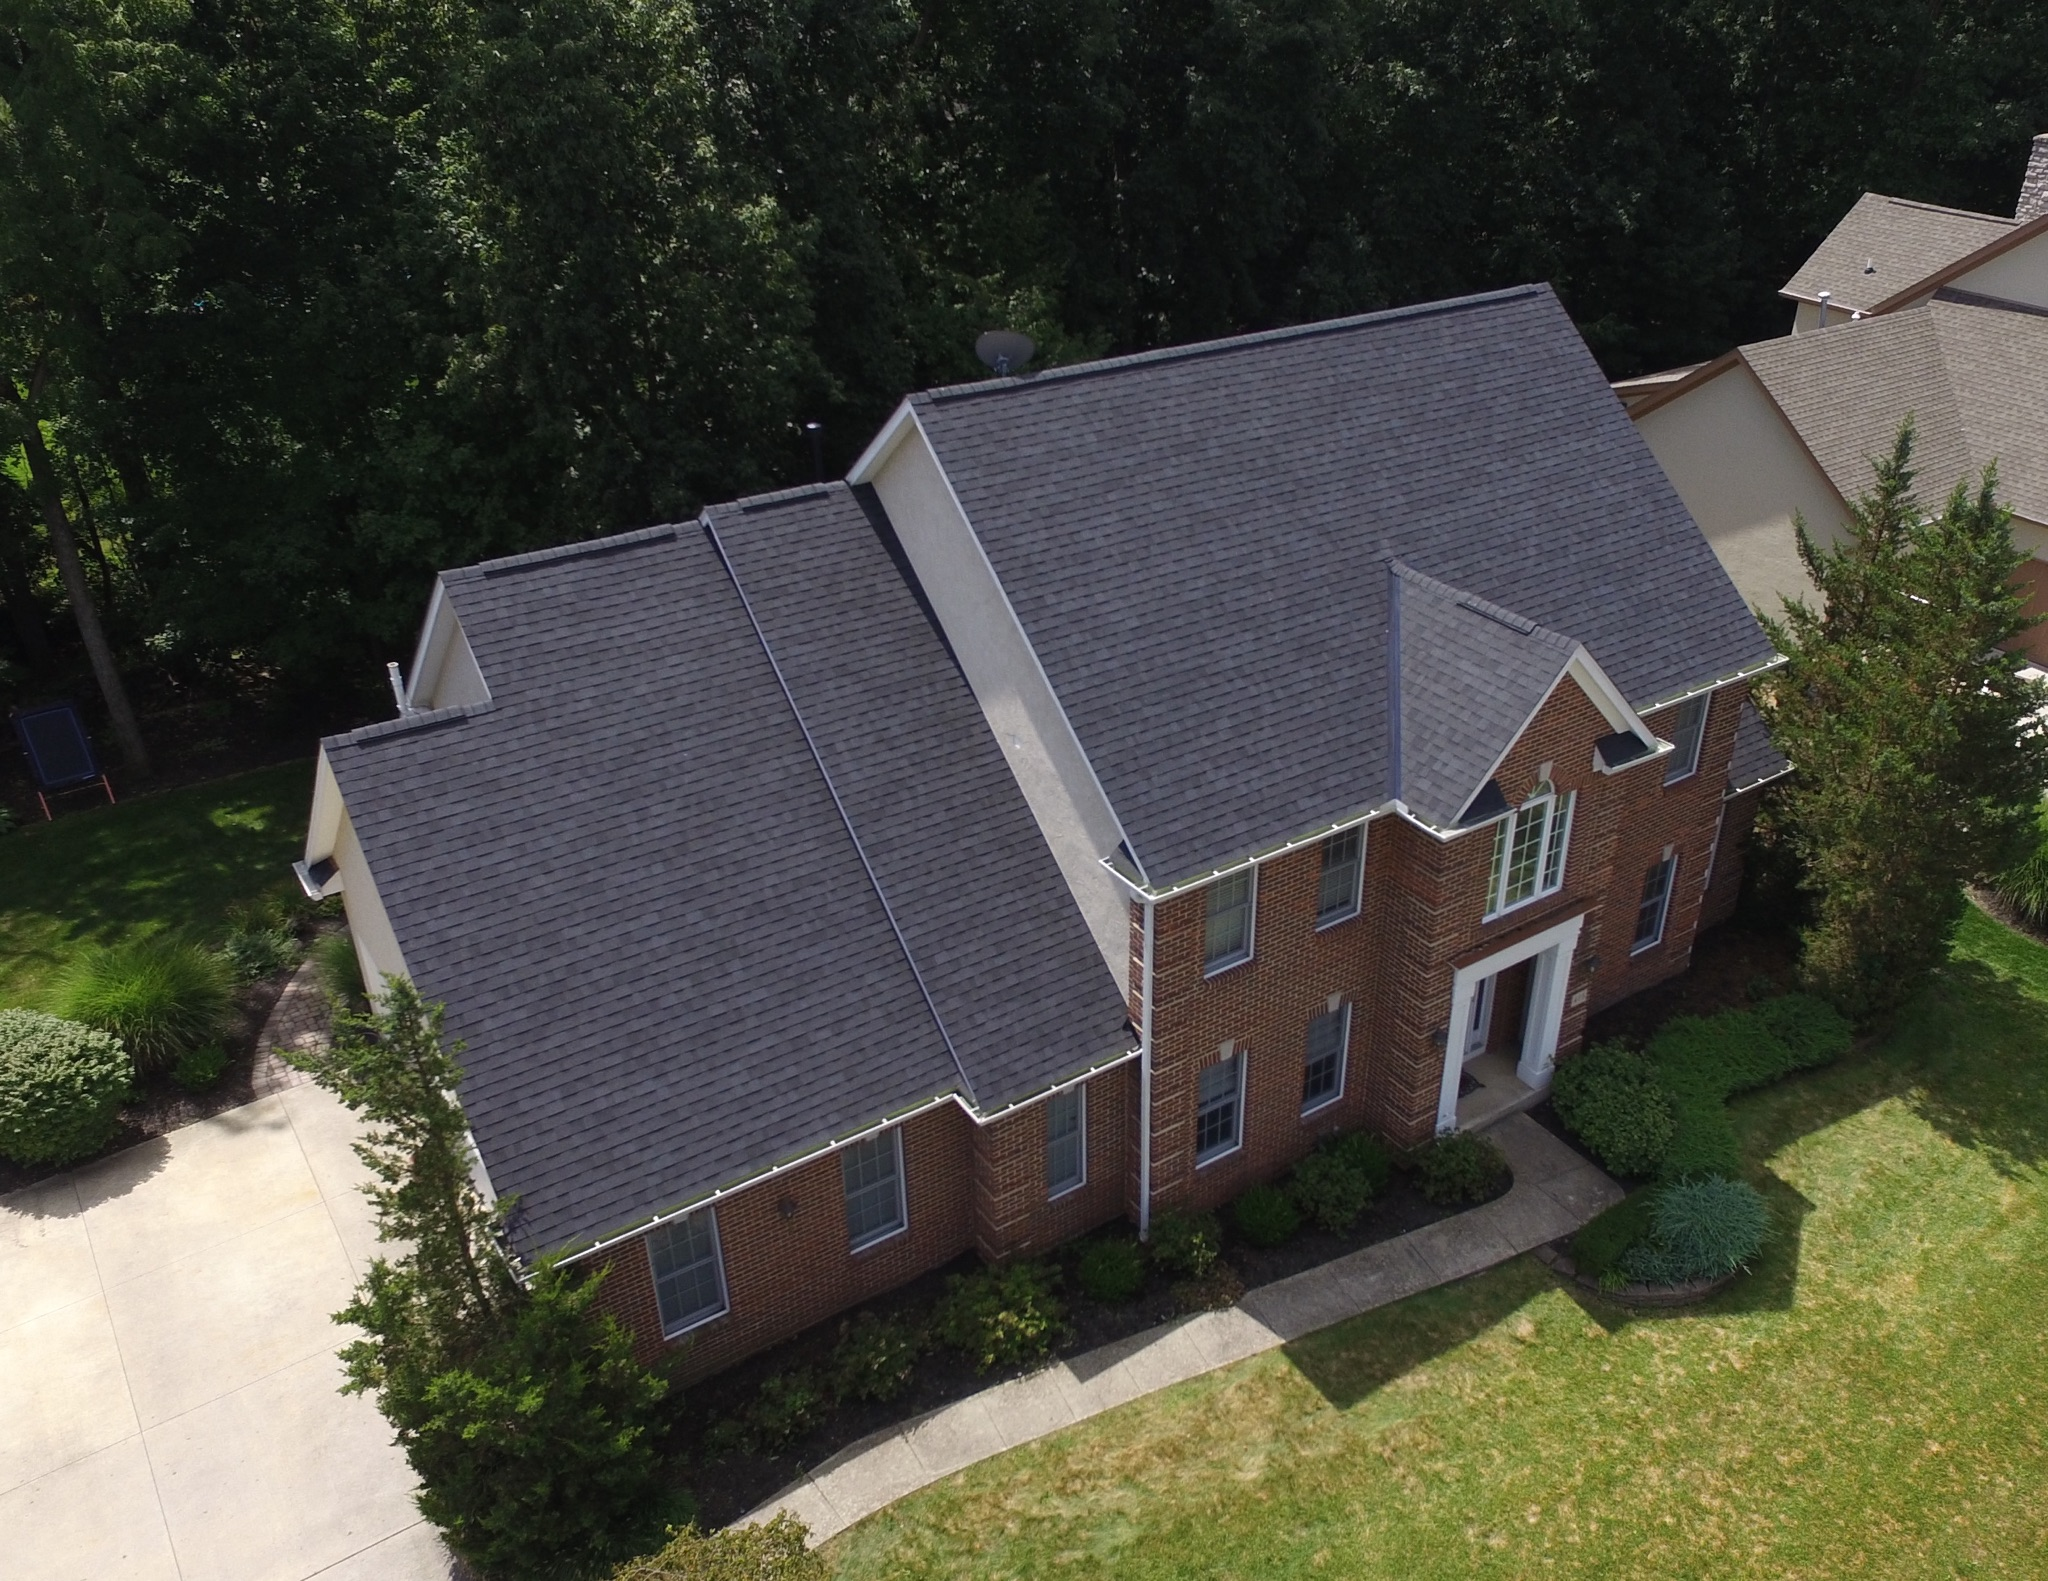 Attractive Benchmark Roofers Of Columbus Ohio Can Handle Any Residential Or Commercial  Improvement Project. We Have More Than 50 Years Of Combined Roofing, ...